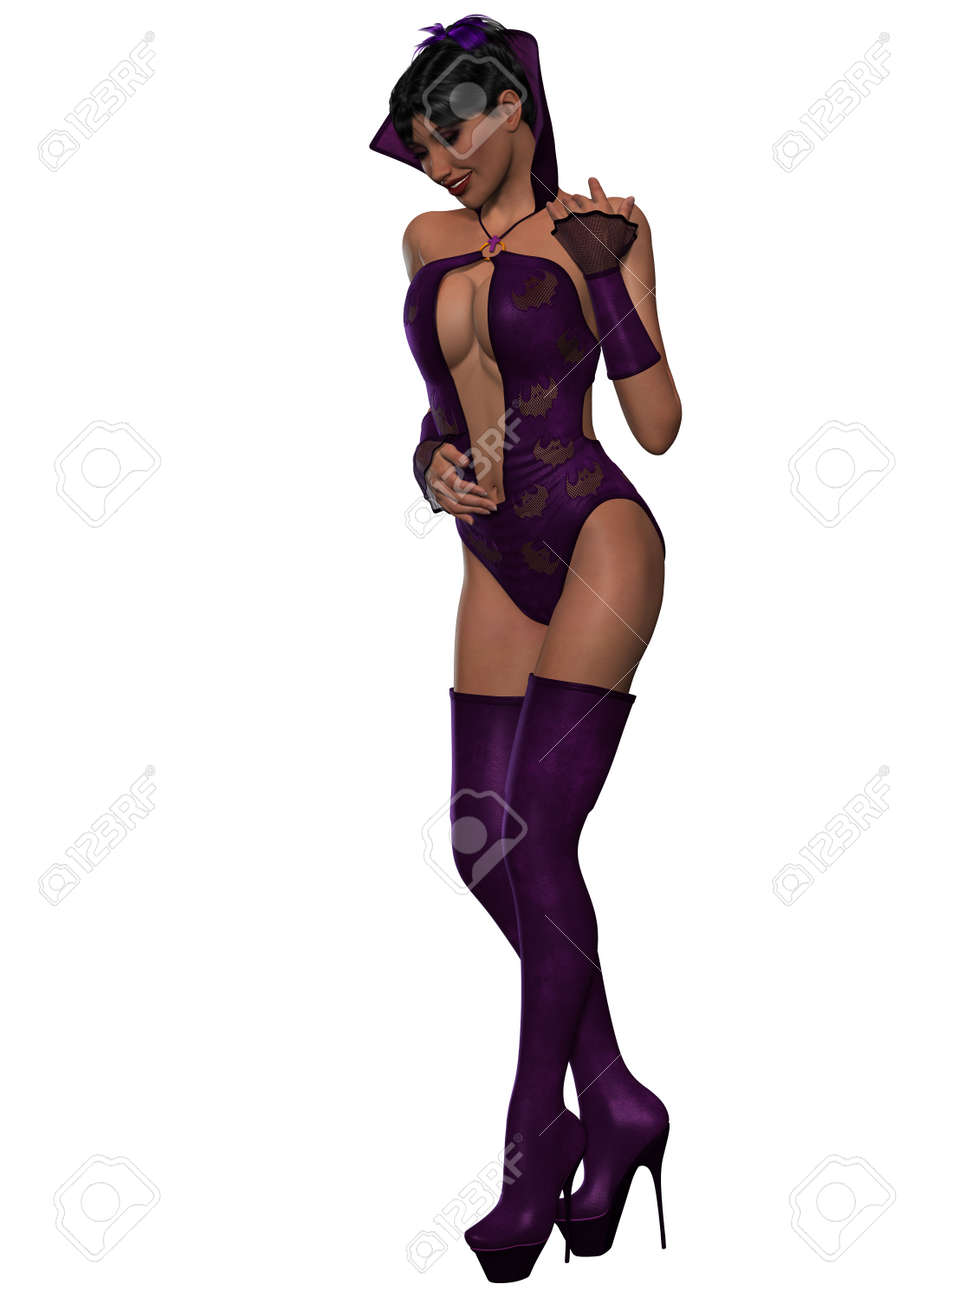 Sexy Halloween Outfit Stock Photo Picture And Royalty Free Image